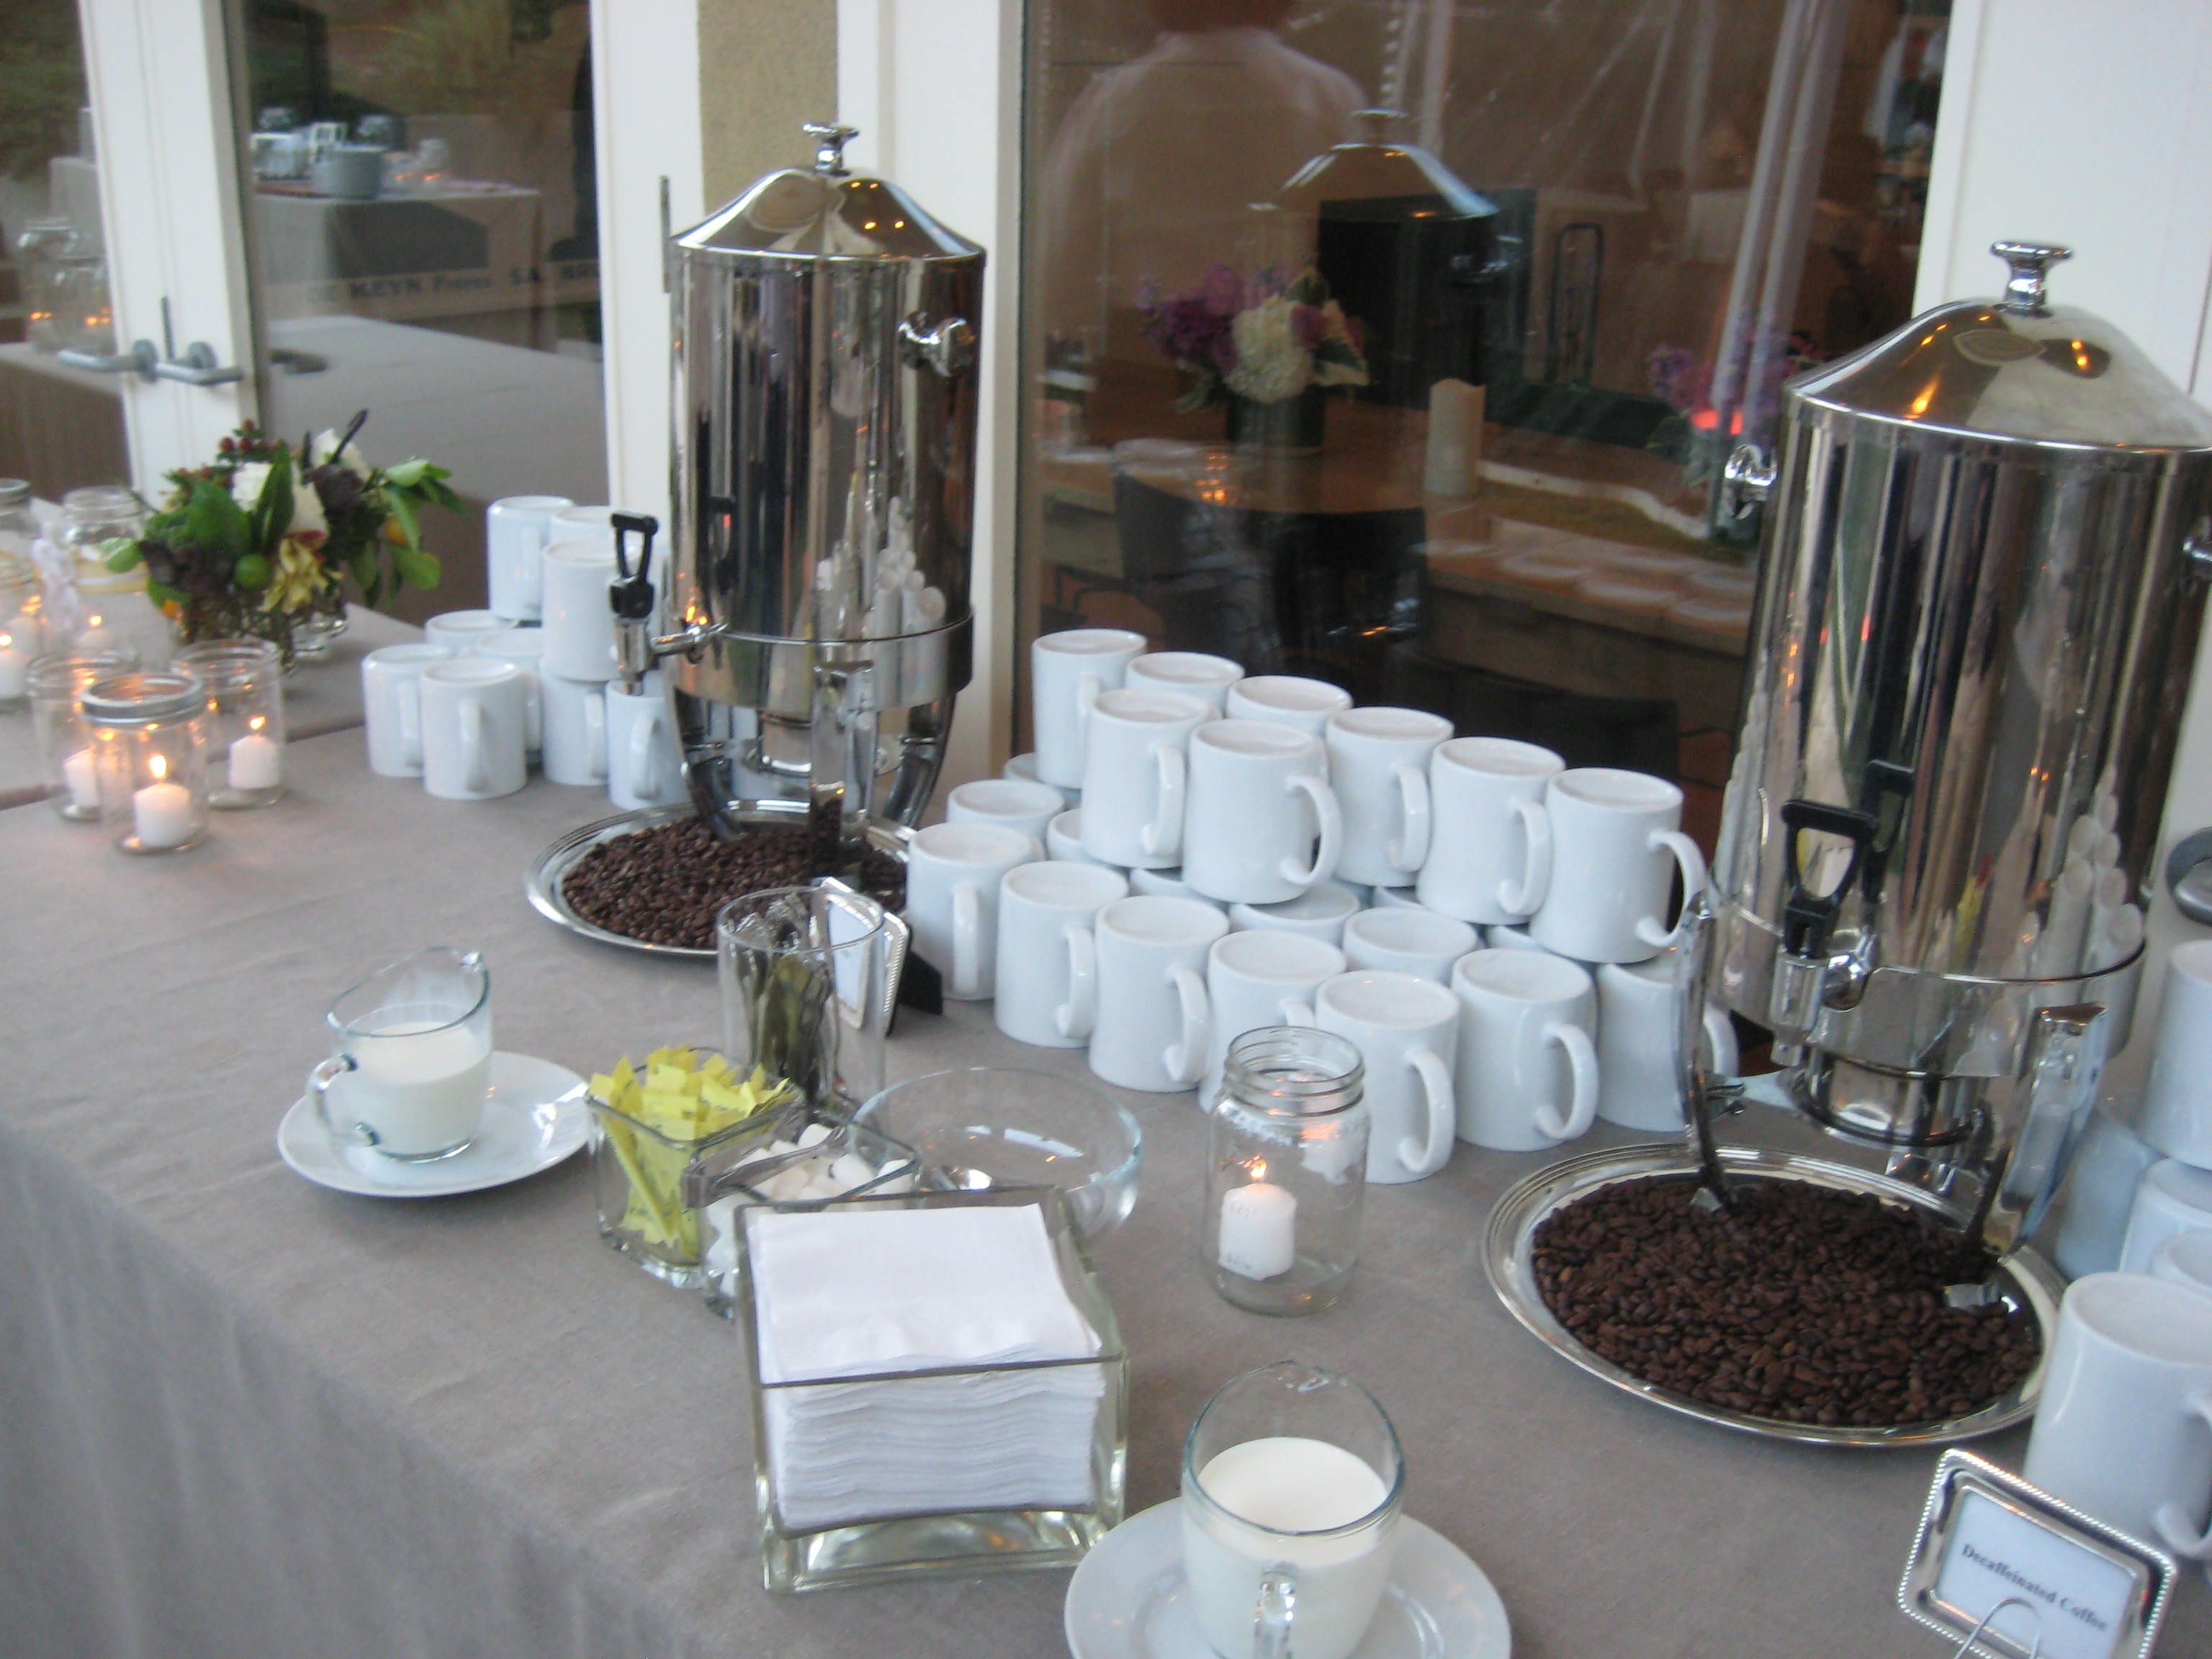 Coffee Station like the idea of coffee beans maybe a